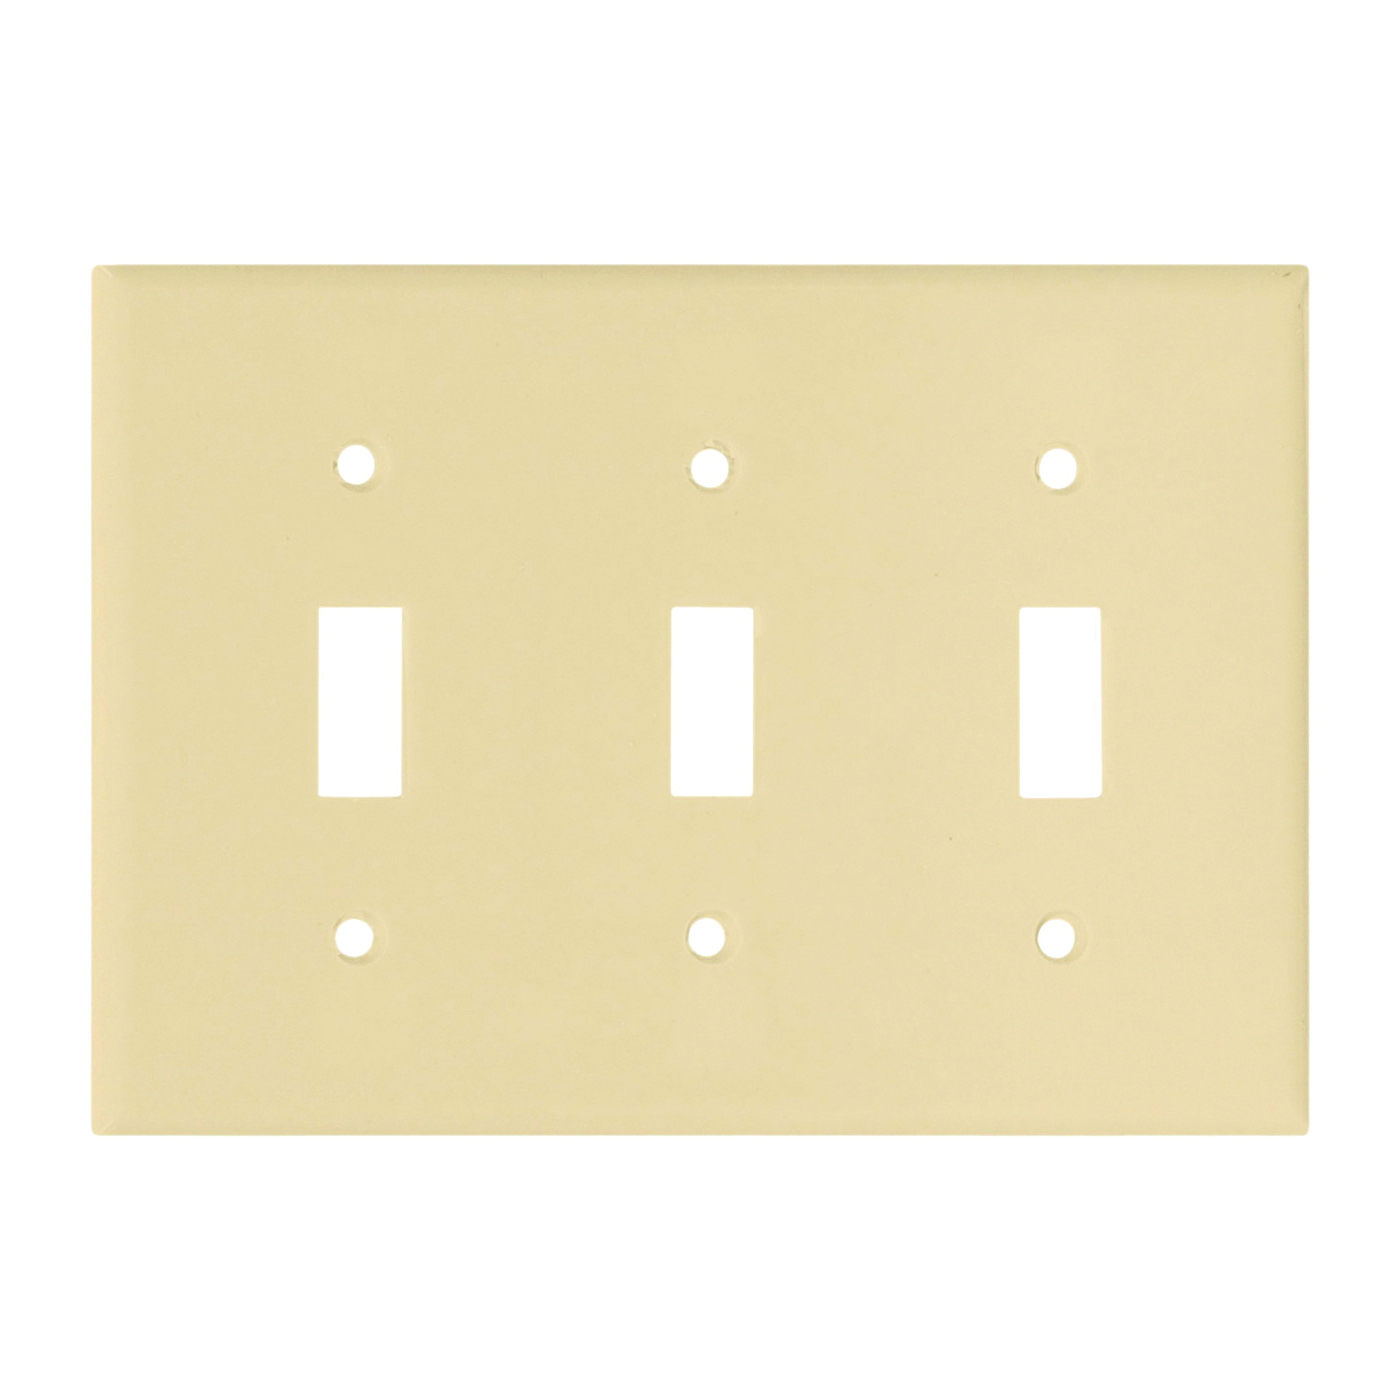 Picture of Arrow Hart 2141V-BOX Wallplate, 4-1/2 in L, 6.37 in W, 3-Gang, Thermoset, Ivory, High-Gloss